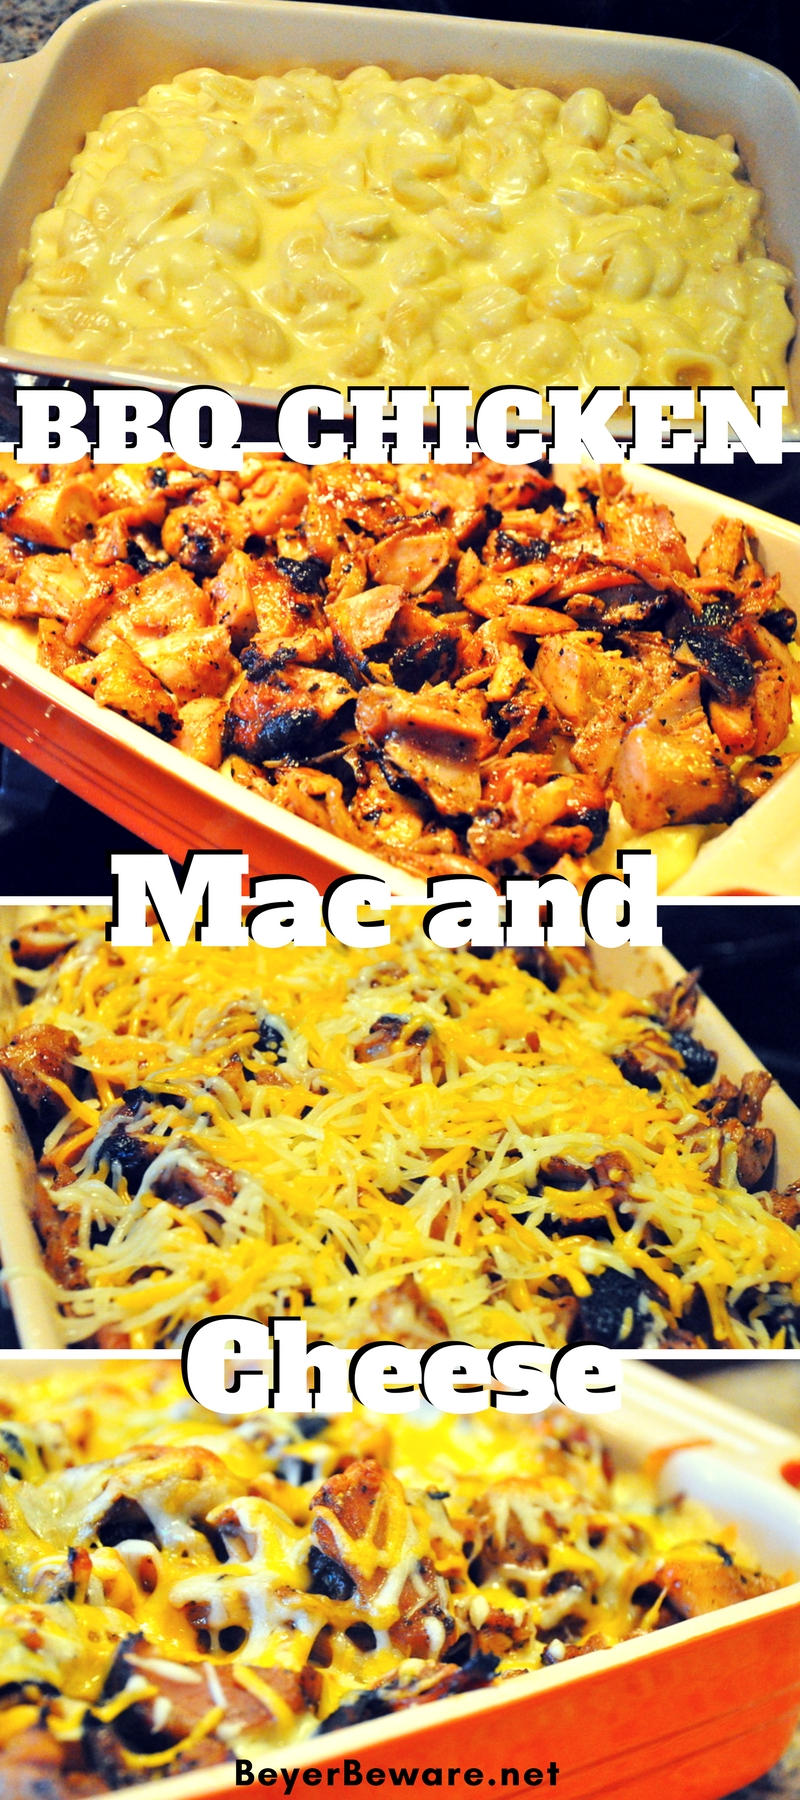 BBQ chicken mac and cheese is a great way to use leftover grilled BBQ chicken with cheesy macaroni for a quick go-to weeknight meal.